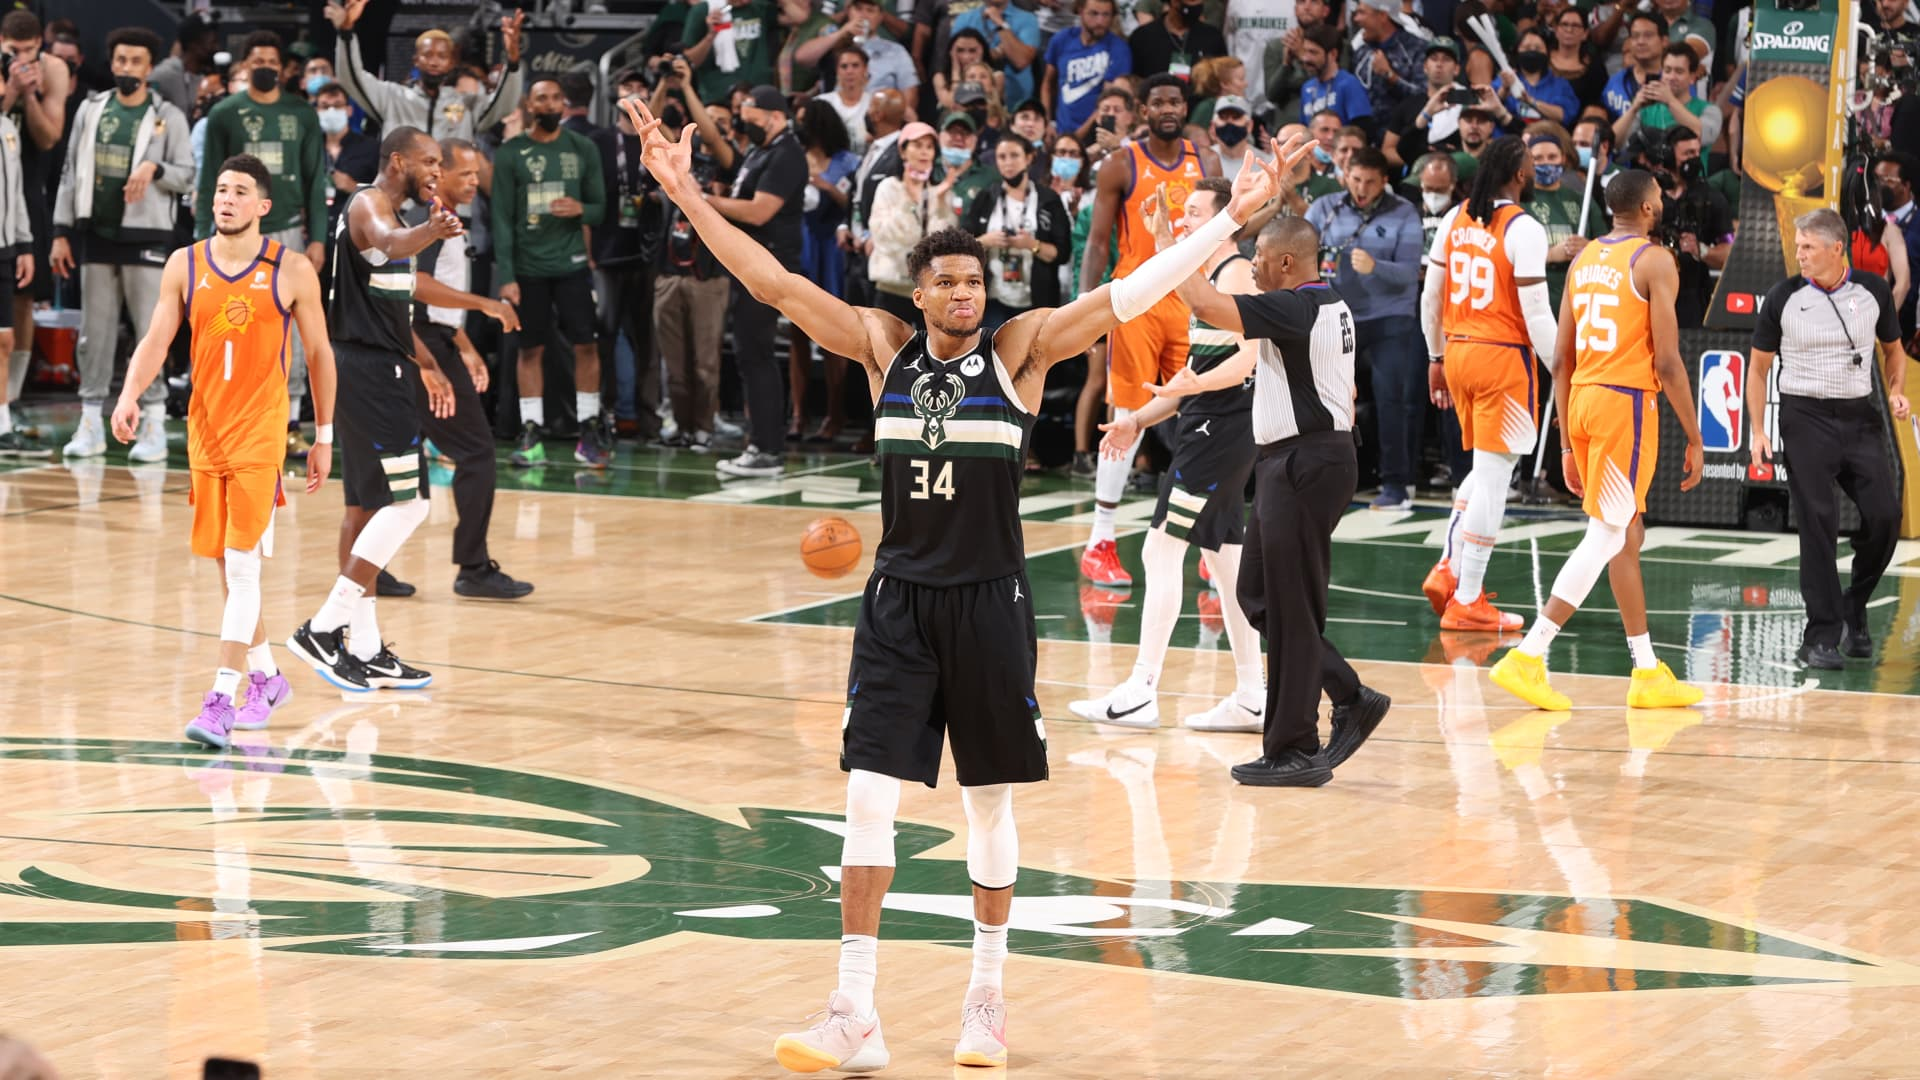 Giannis Antetokounmpo #34 of the Milwaukee Bucks celebrates during Game Six of the 2021 NBA Finals on July 20, 2021 at the Fiserv Forum in Milwaukee, Wisconsin. Copyright 2021 NBAE.